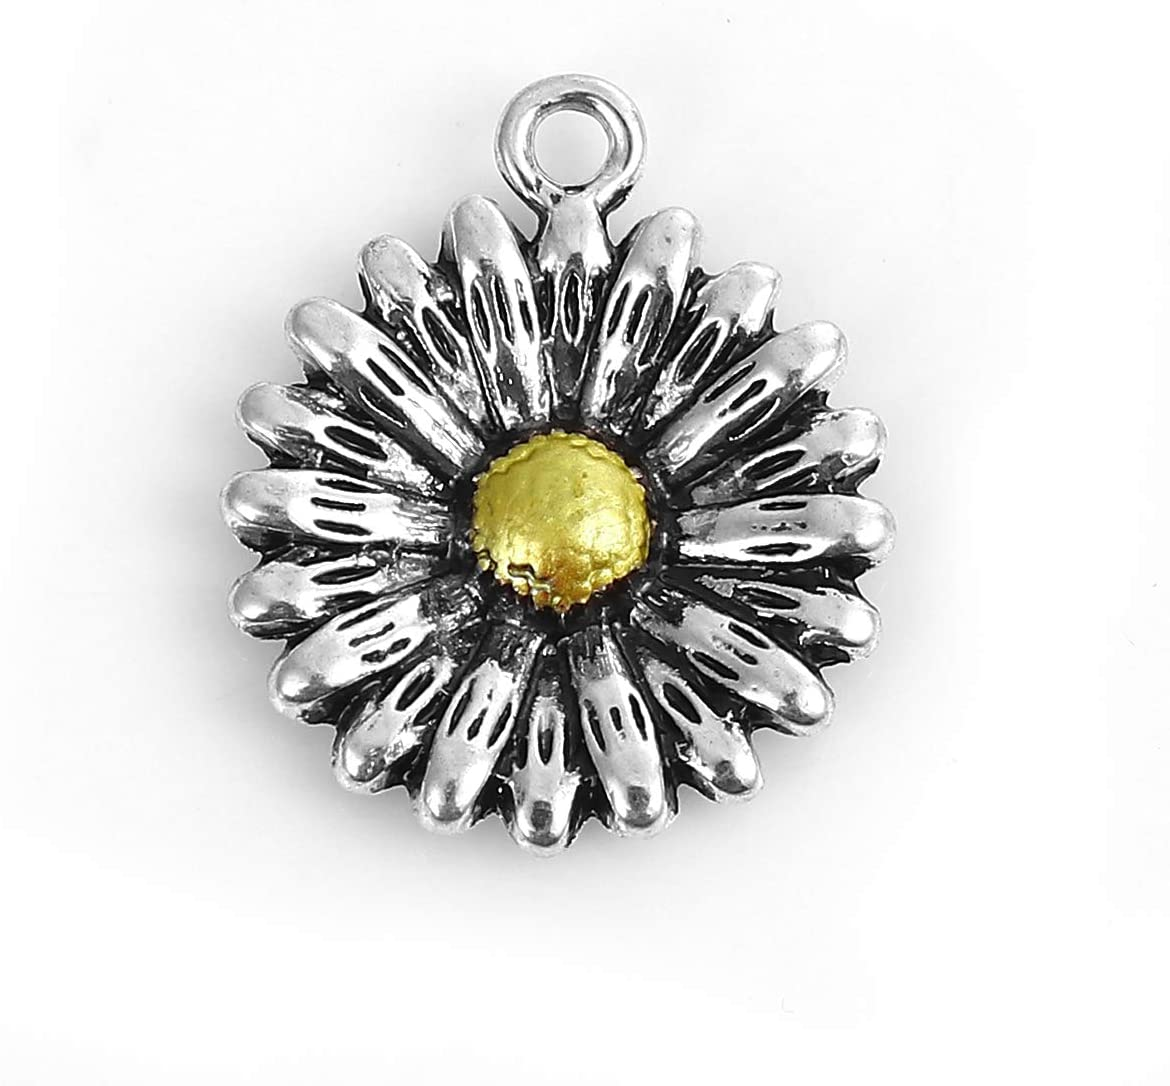 PEPPERLONELY 10pc Antiqued Silver Alloy Sun Flower Charms Pendants 24x20mm (1